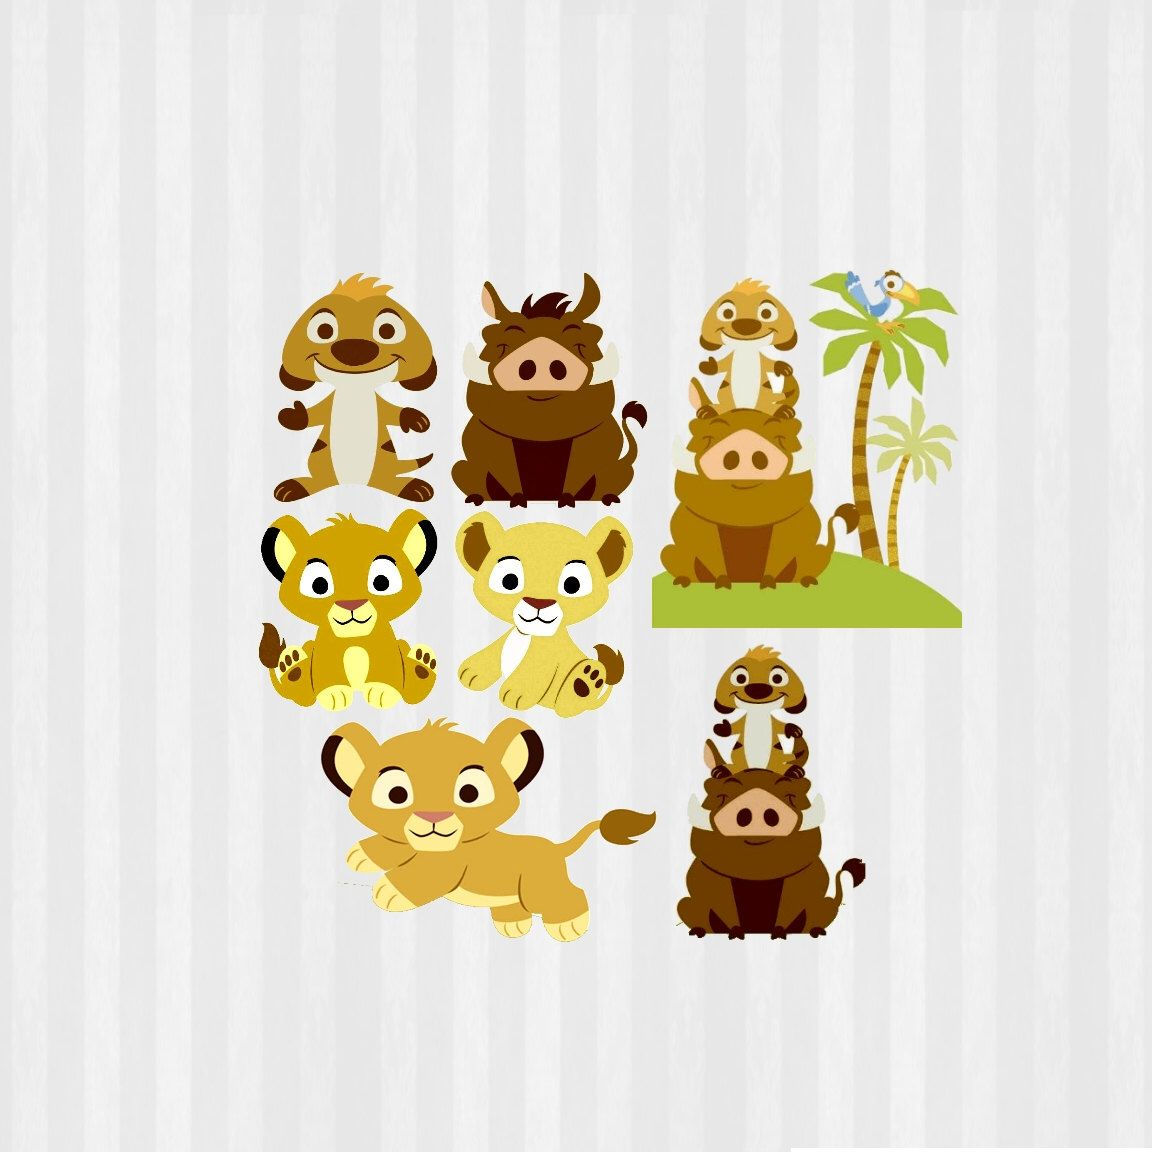 Bebé León rey Clip art, SVG Baby Lion King, Rey León baby shower ...